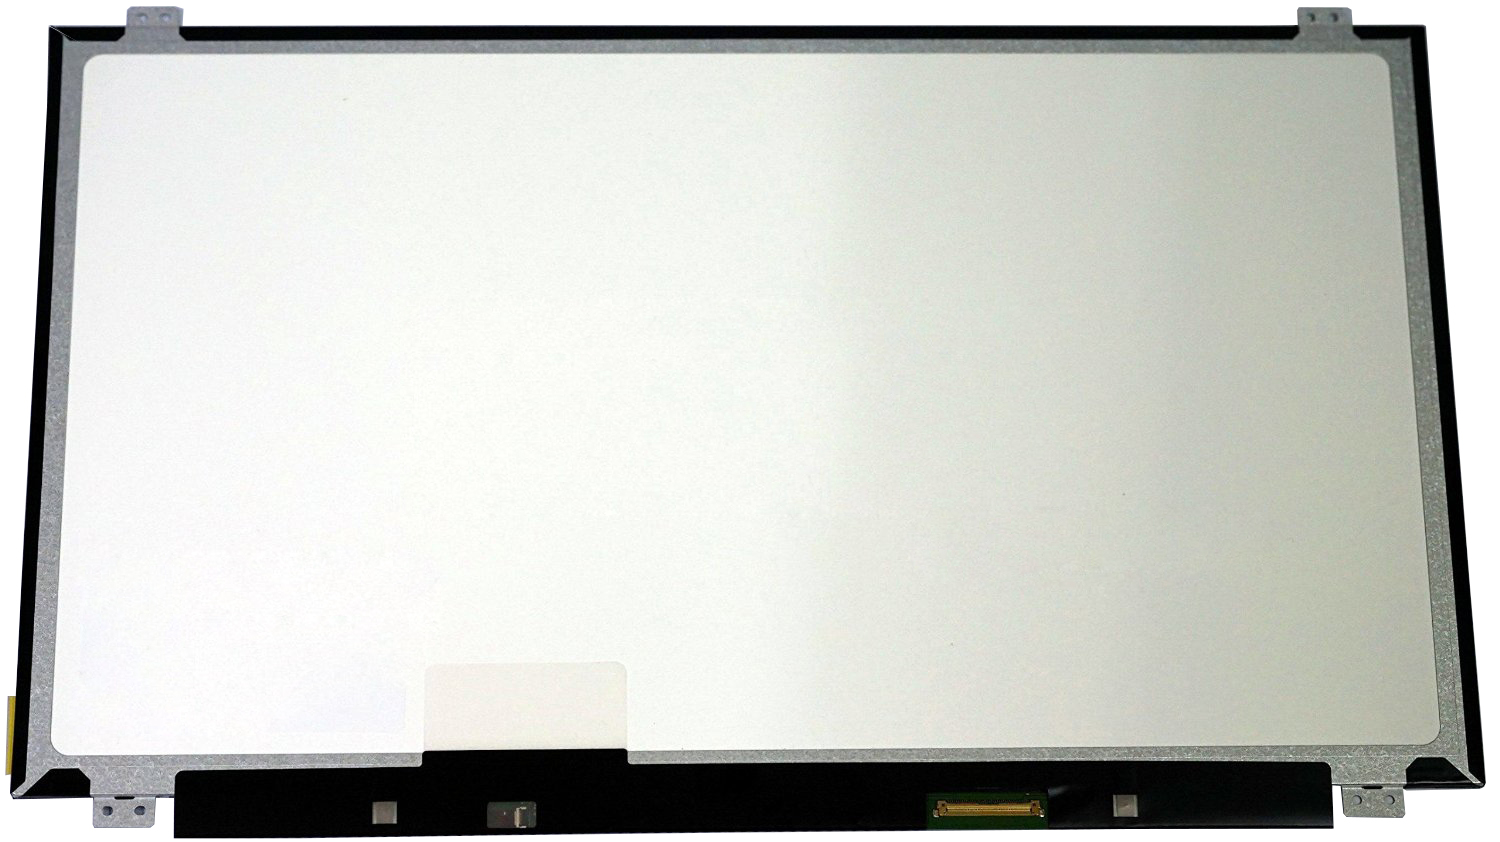 QuYing Laptop LCD Screen for ACER ASPIRE V3-331 V3-371 SERIES swiss eagle часы swiss eagle se 9063 55 коллекция engineer